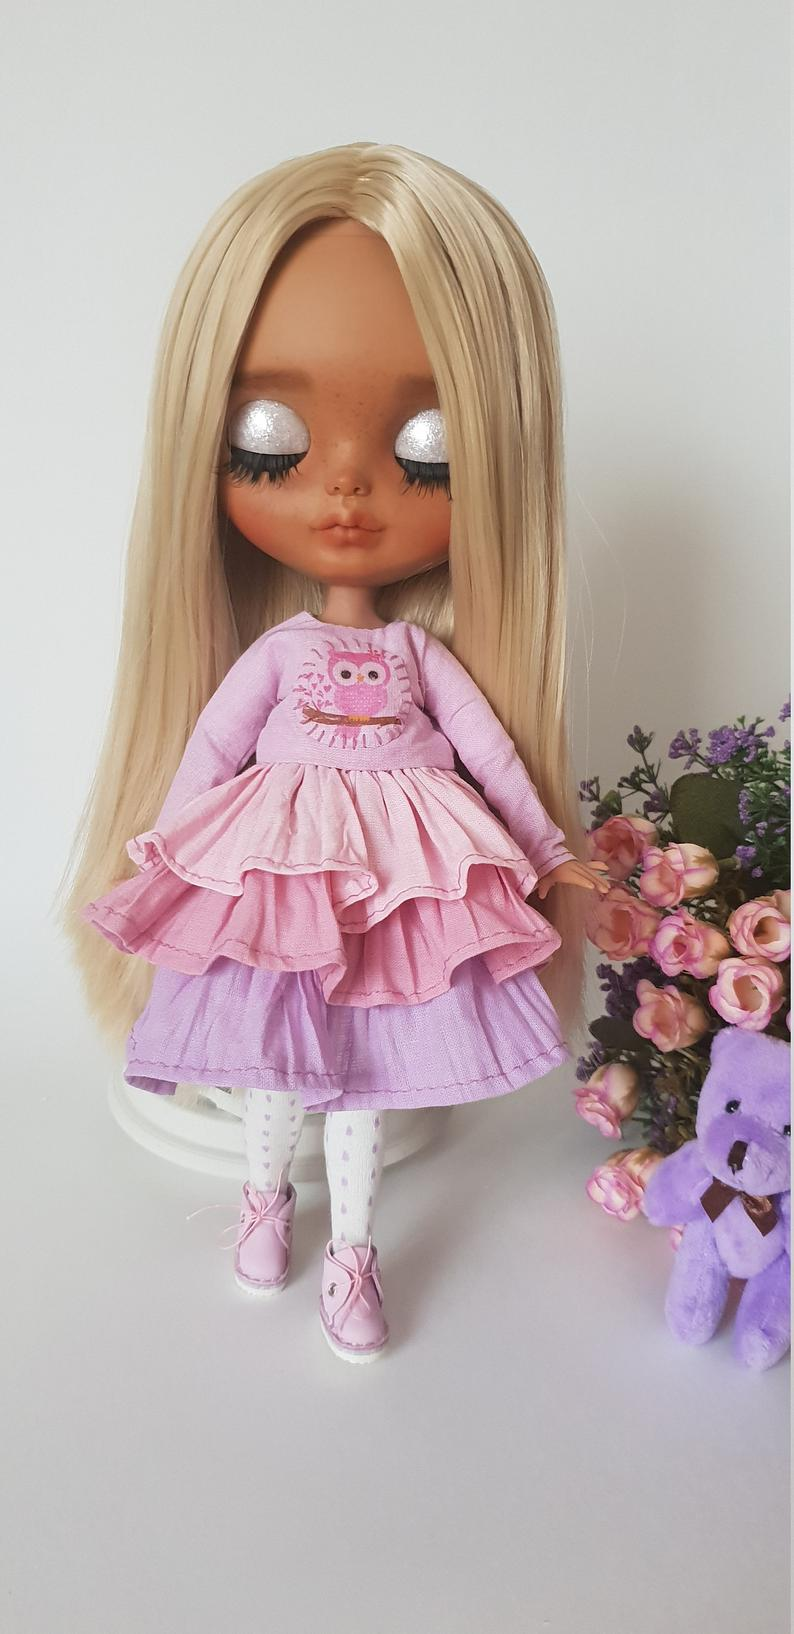 Everly - Custom Blythe Doll One-Of-A-Kind OOAK Sold-out Custom Blythes